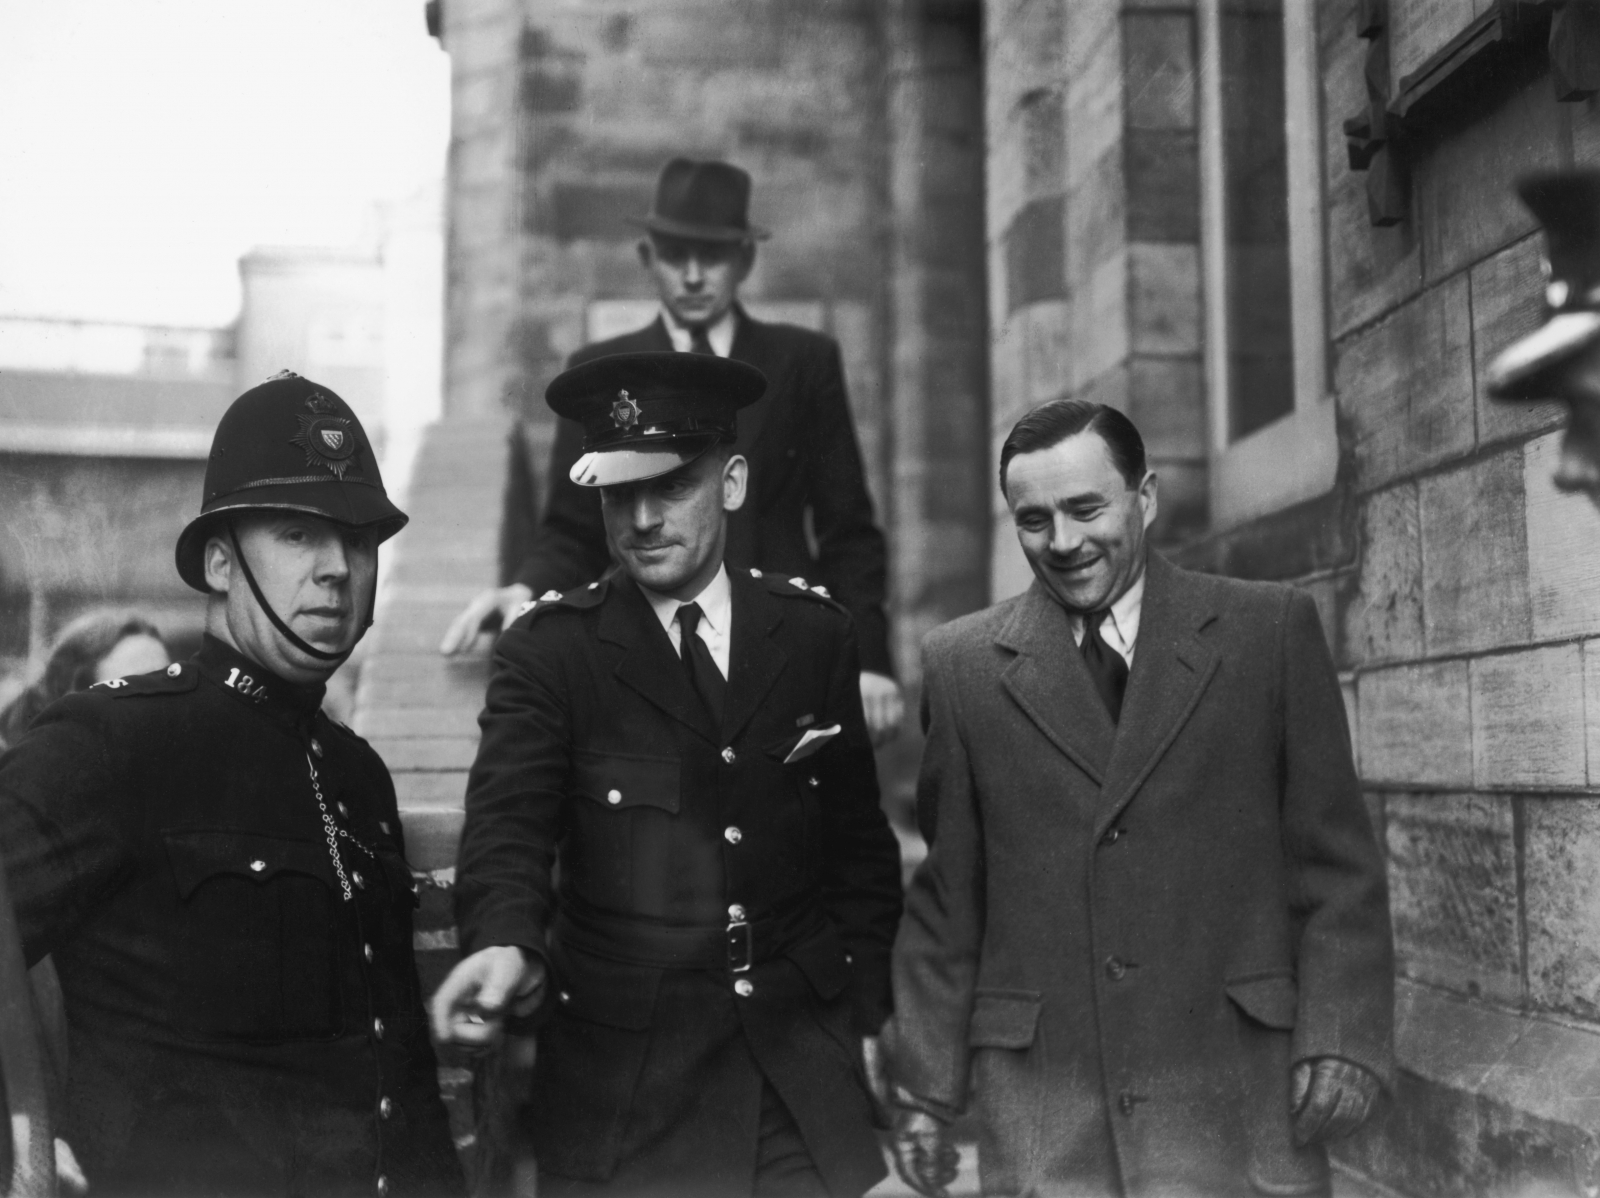 a case profile of the acid bath murderer john george haigh Donald henry gaskins a killer so vicious he  better understanding their psychological profile  acid bath murderer - john george haigh.